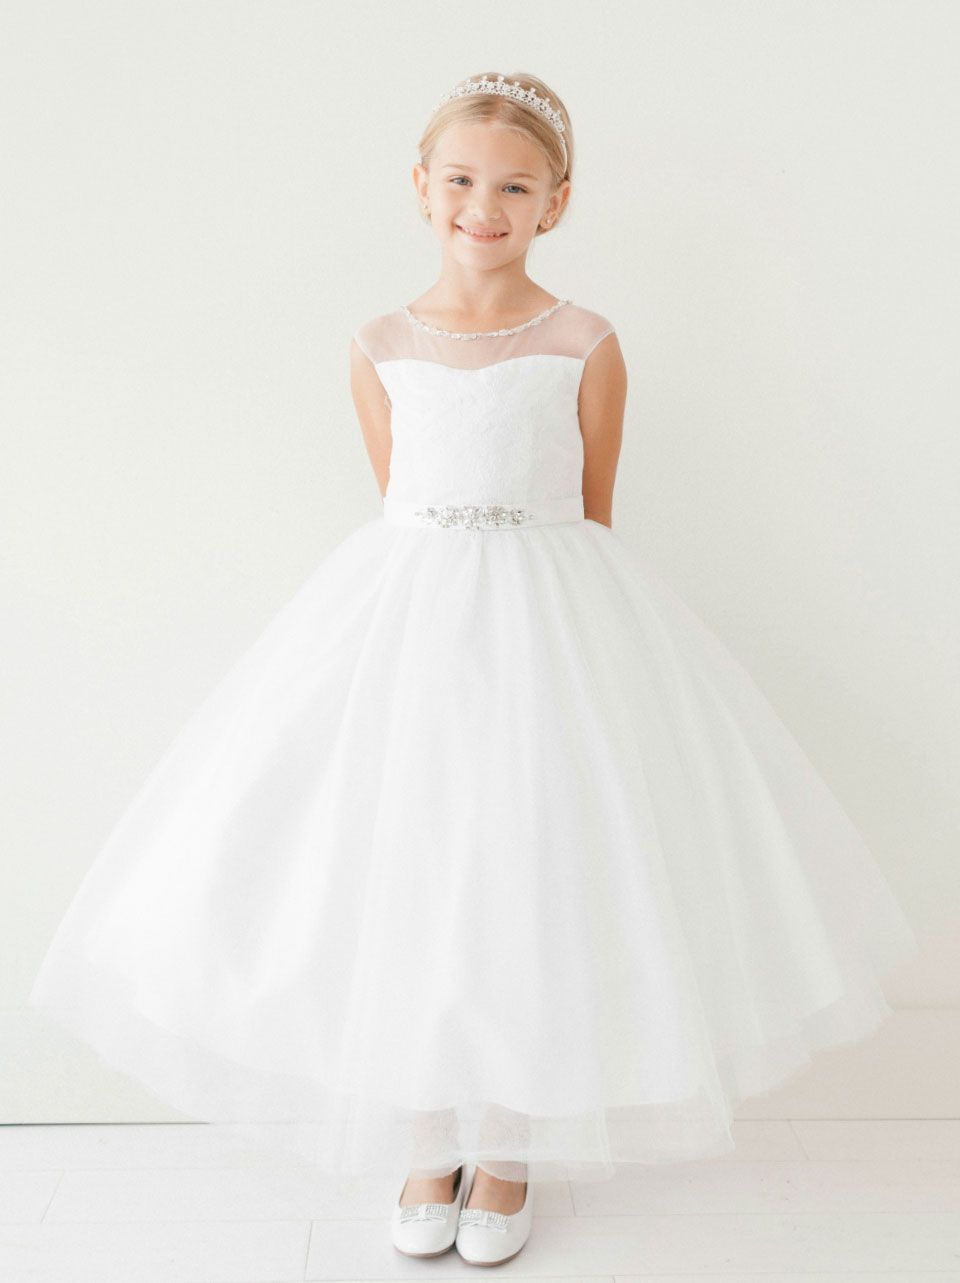 8ba5bd998 Girls Dress Style 5712 - Lace Dress with Sheer Illusion Neckline in Choice  of Color This